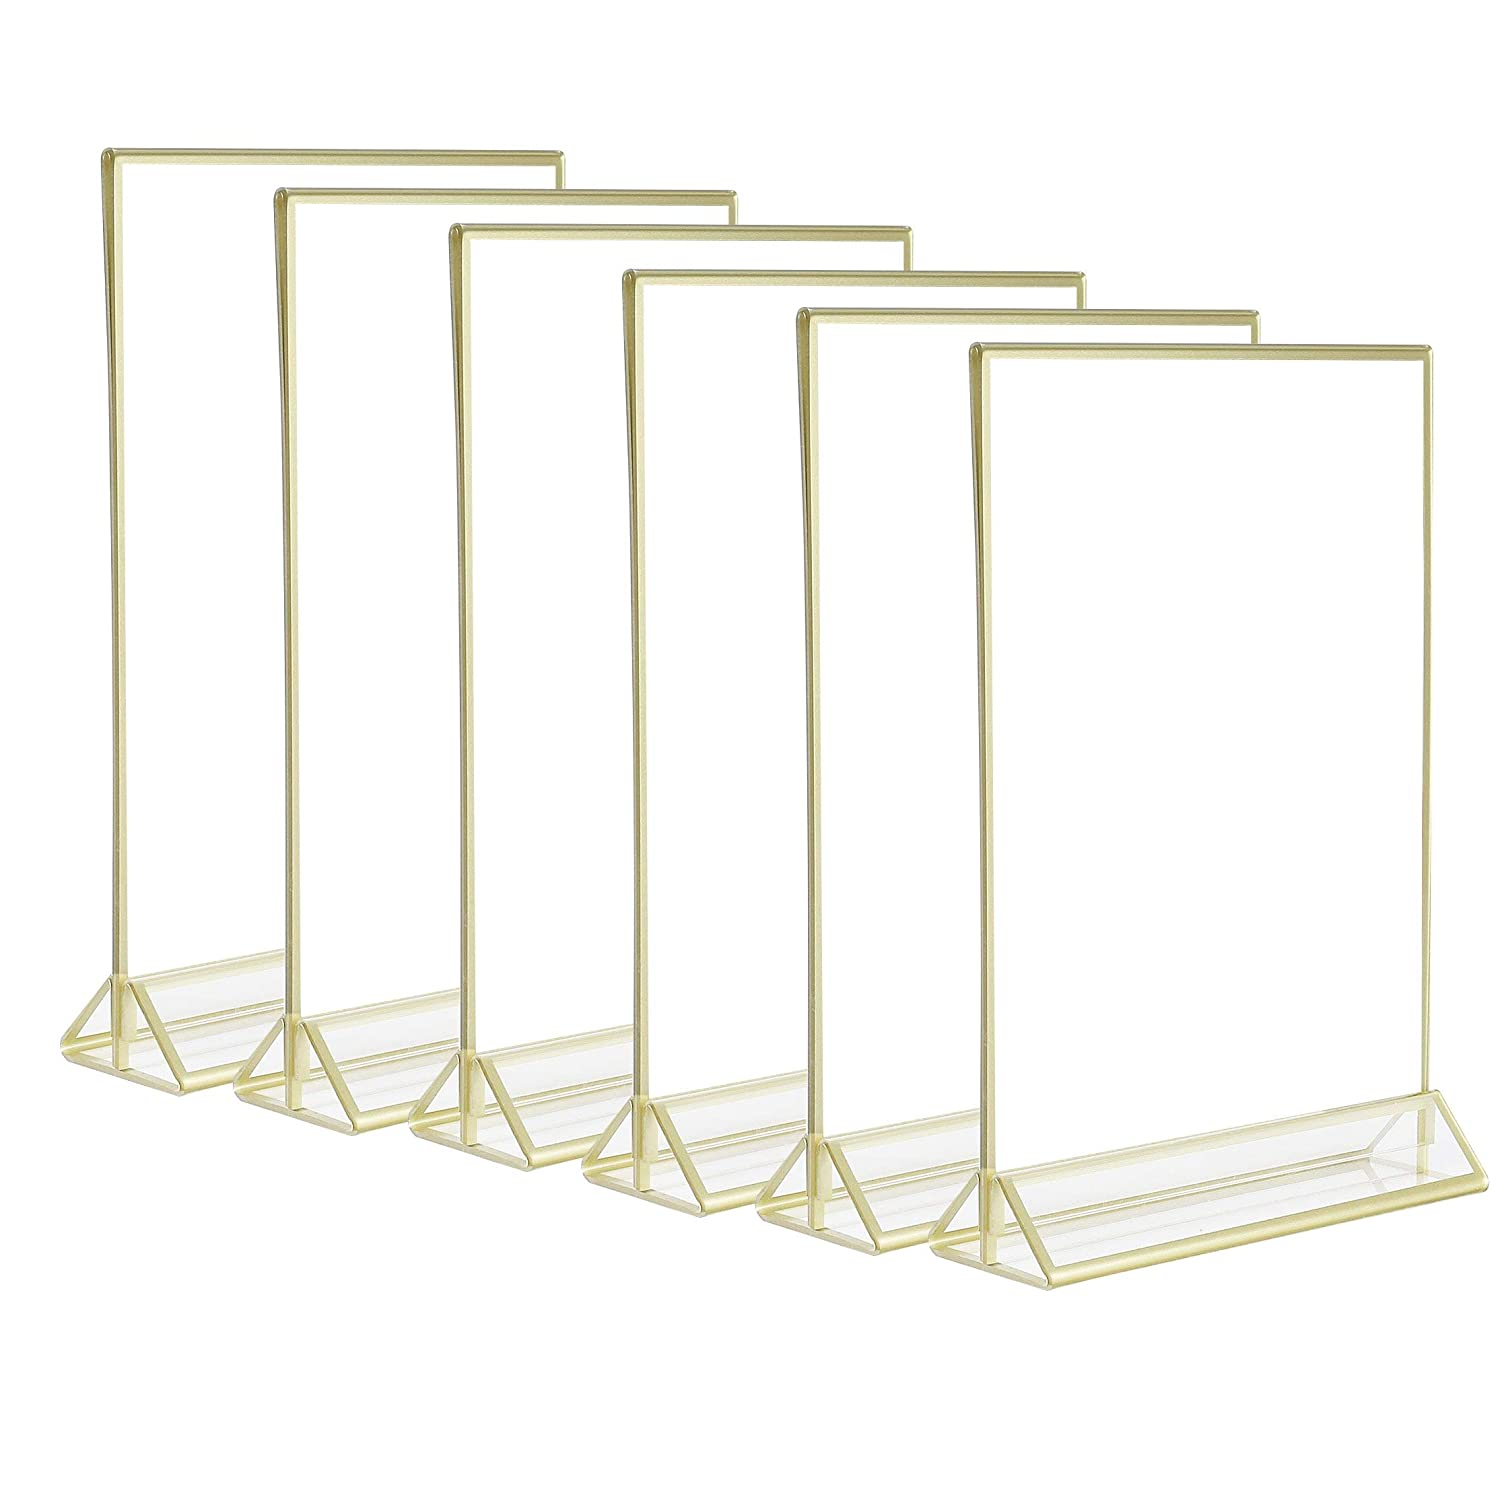 6Pack 5x7 Acrylic Menu Holders,Clear Acrylic Double Sided Frames Display Sign Holder with Vertical Stand and 3mm Gold Border by Cq acrylic 71BNmQgOo7L